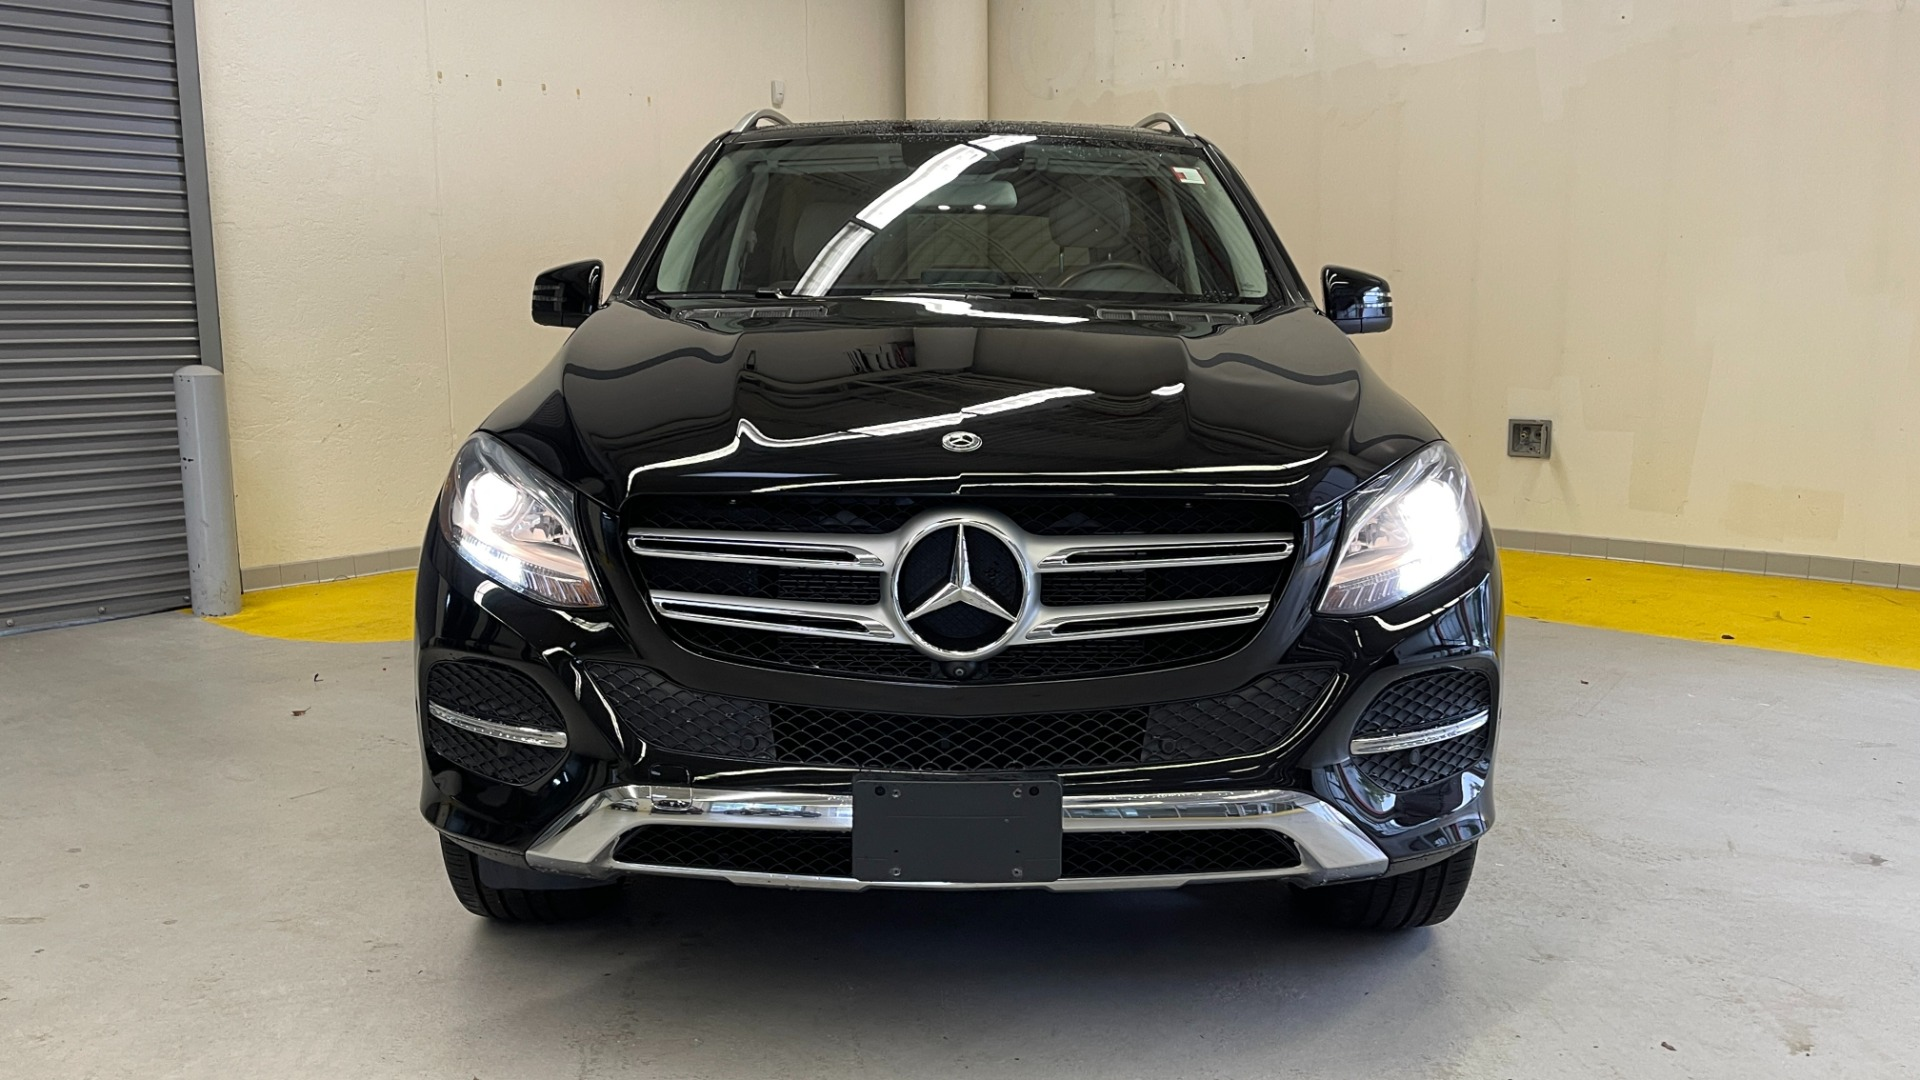 Used 2018 Mercedes-Benz GLE 350 4MATIC PREMIUM / NAV / PARK PILOT / BSA / H/K SND / SURROUND VIEW for sale $40,995 at Formula Imports in Charlotte NC 28227 19